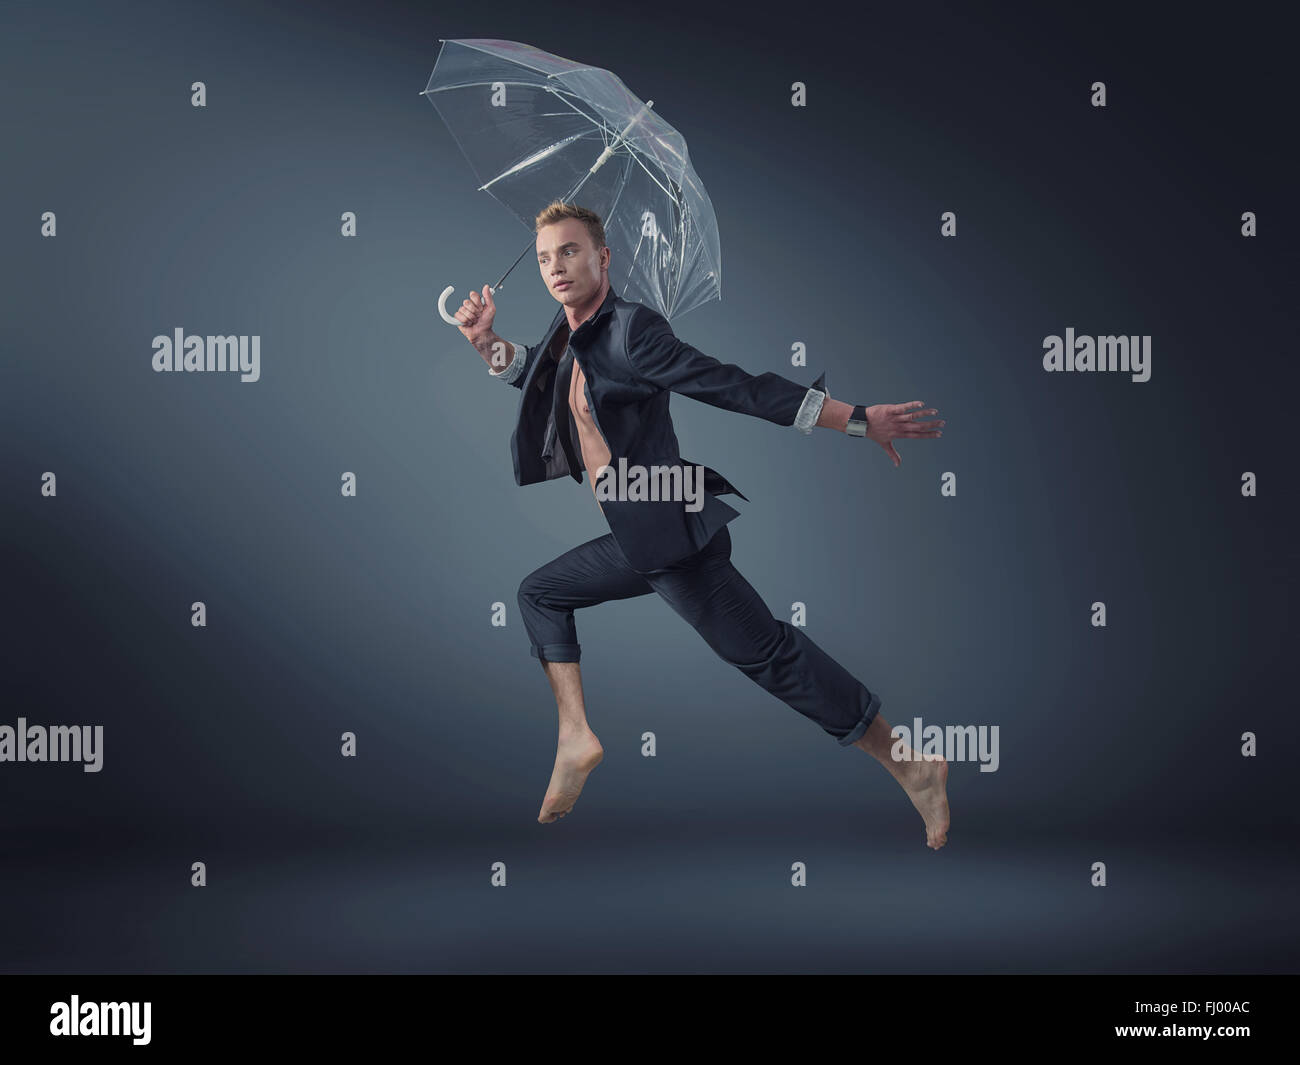 Handsome manager jumping with a transparent umbrella - Stock Image